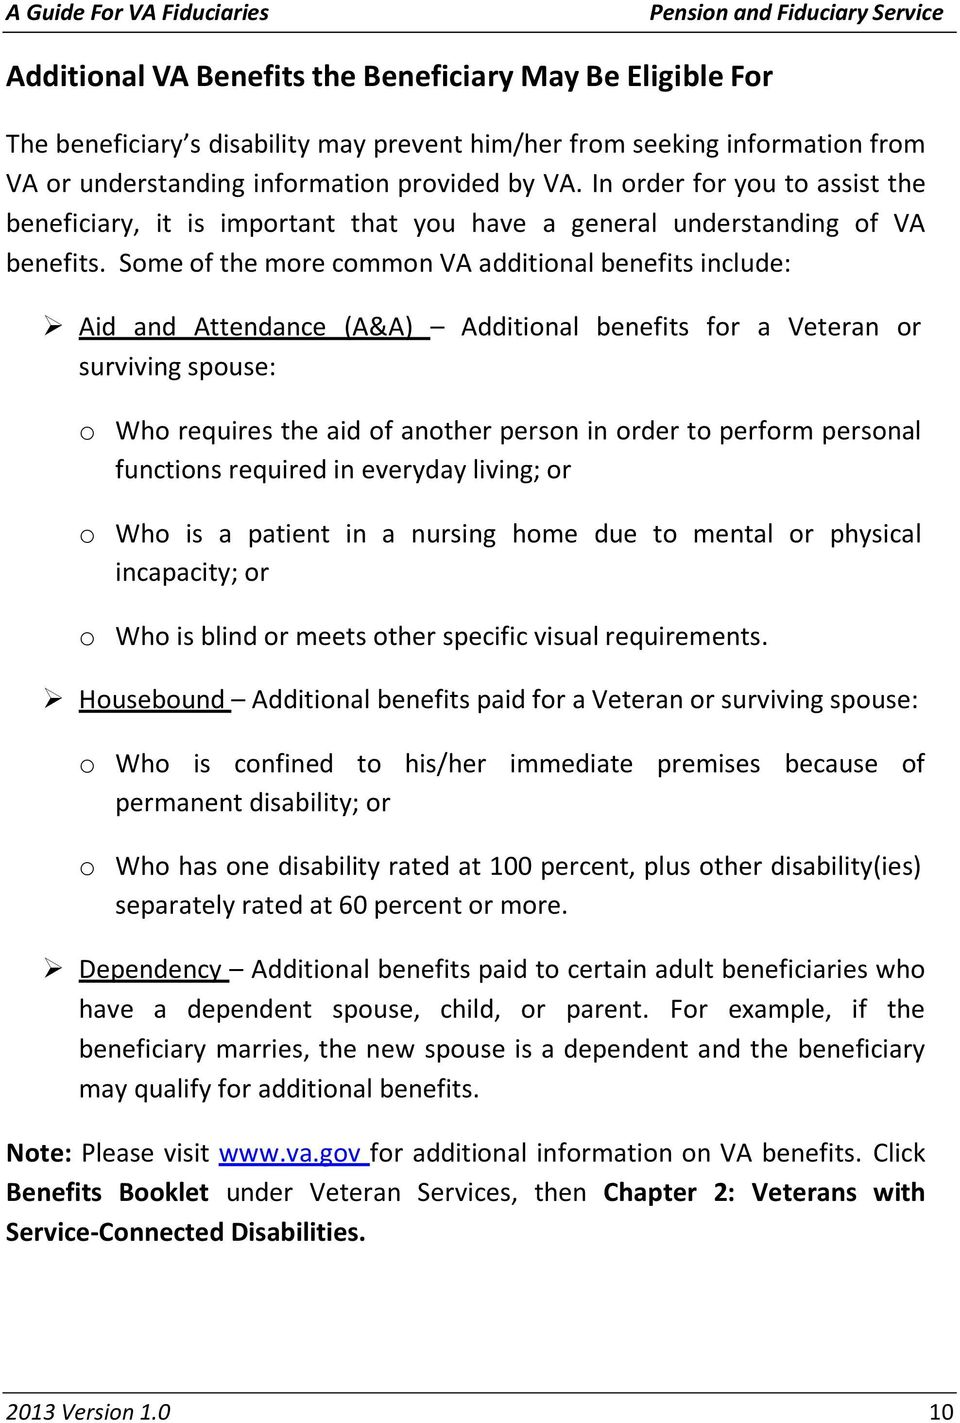 Some of the more common VA additional benefits include: Aid and Attendance (A&A) Additional benefits for a Veteran or surviving spouse: o Who requires the aid of another person in order to perform